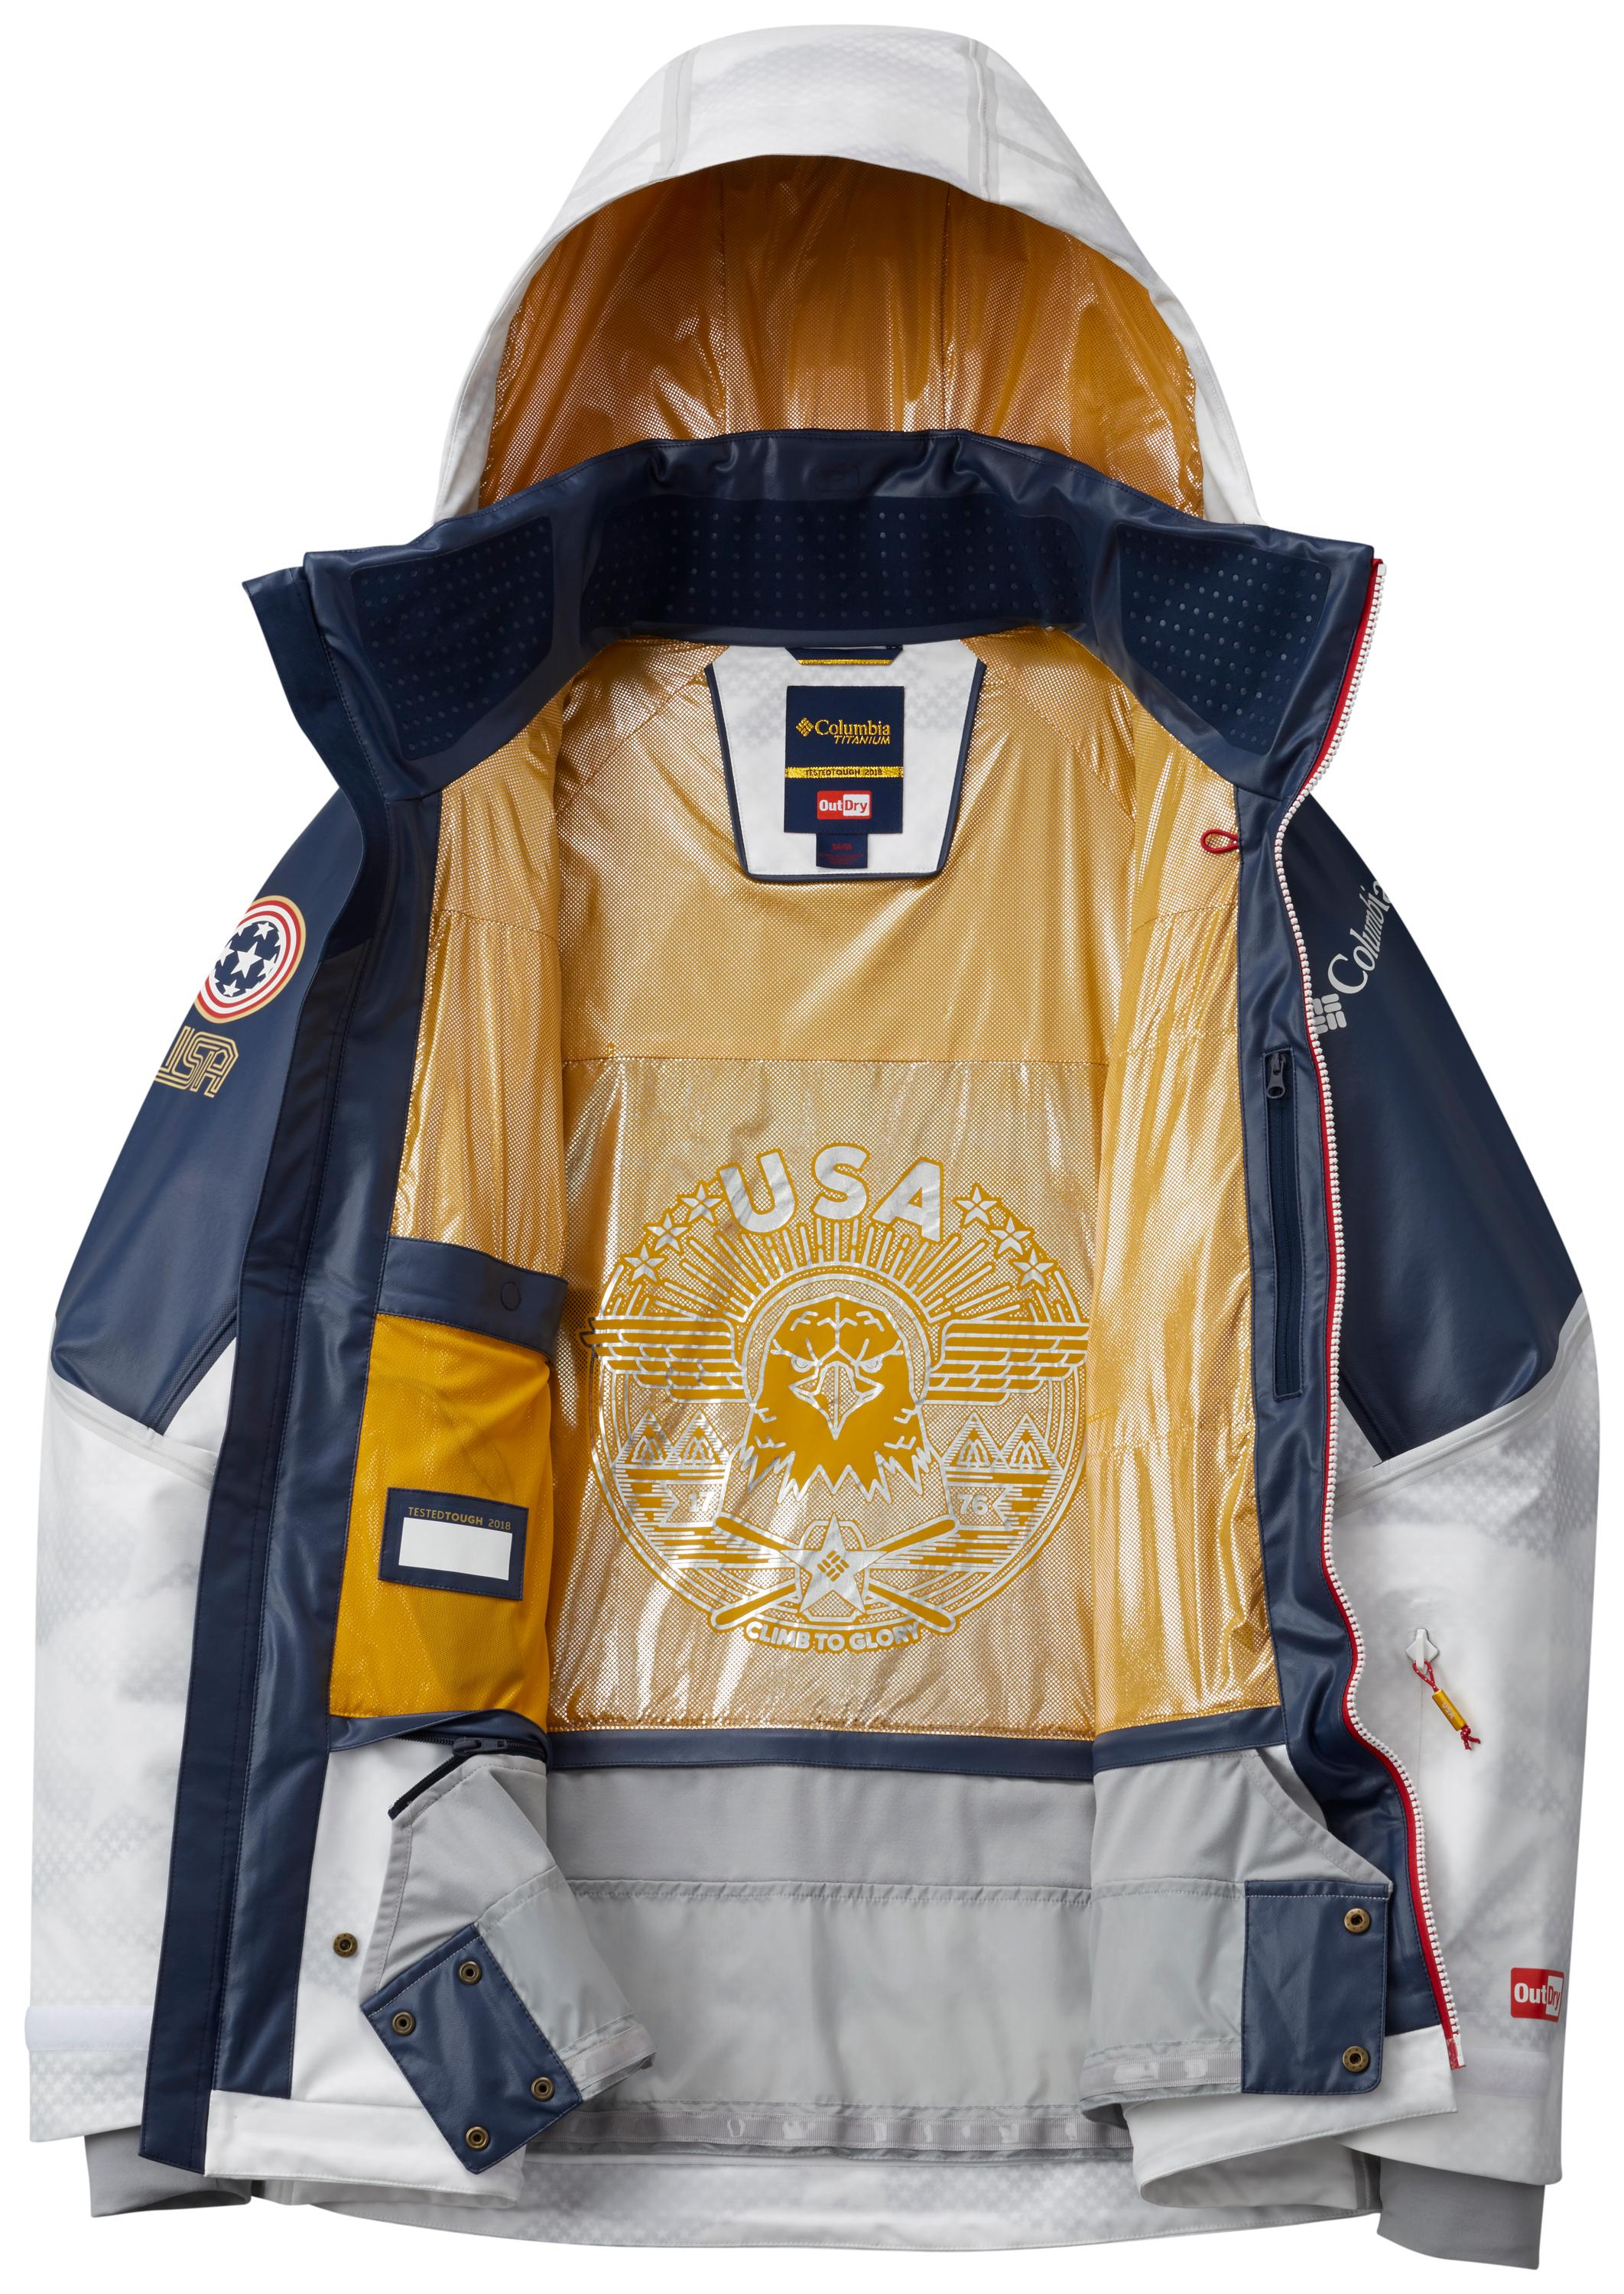 Columbia Sportswear nveiled freestyle ski team uniforms that will be worn by athletes from the U.S. and other nations competing in the 2018 Olympic Winter Games in PyeongChang. Six countries will compete in the 2018 Games wearing uniforms designed by Columbia: The United States, Canada, Belarus, Kazakhstan, Brazil and the Ukraine. These athletes will face each other in the moguls, aerials, slopestyle and halfpipe events. Columbia, the flagship brand of Portland, Oregon-based Columbia Sportswear Company, launched in 1938.  (BusinessNewsWire)